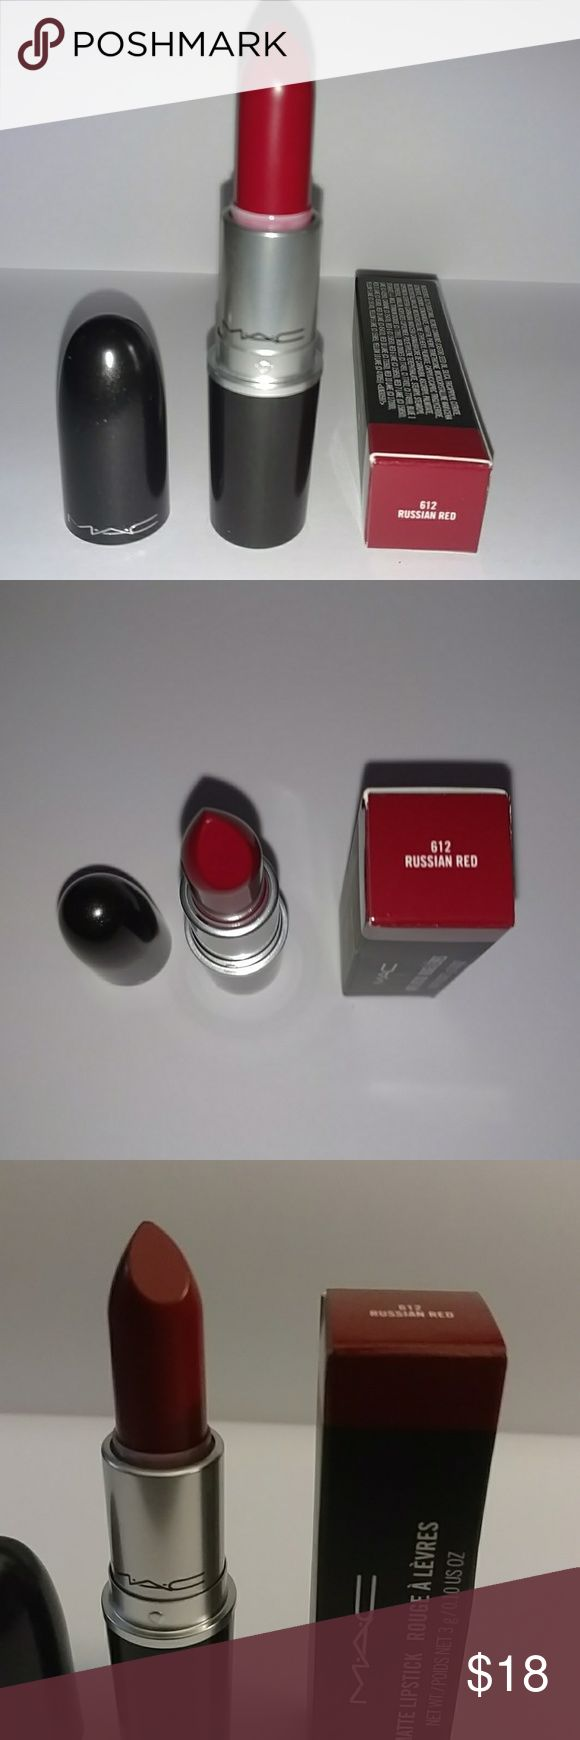 Russian Red - MAC Matte Lipstick Brand new in box lipstick in the color Russian Red.  It's a comfortable formula for those who are a fan of matte lipstick. A staple red for any MAC collection. MAC Cosmetics Makeup Lipstick